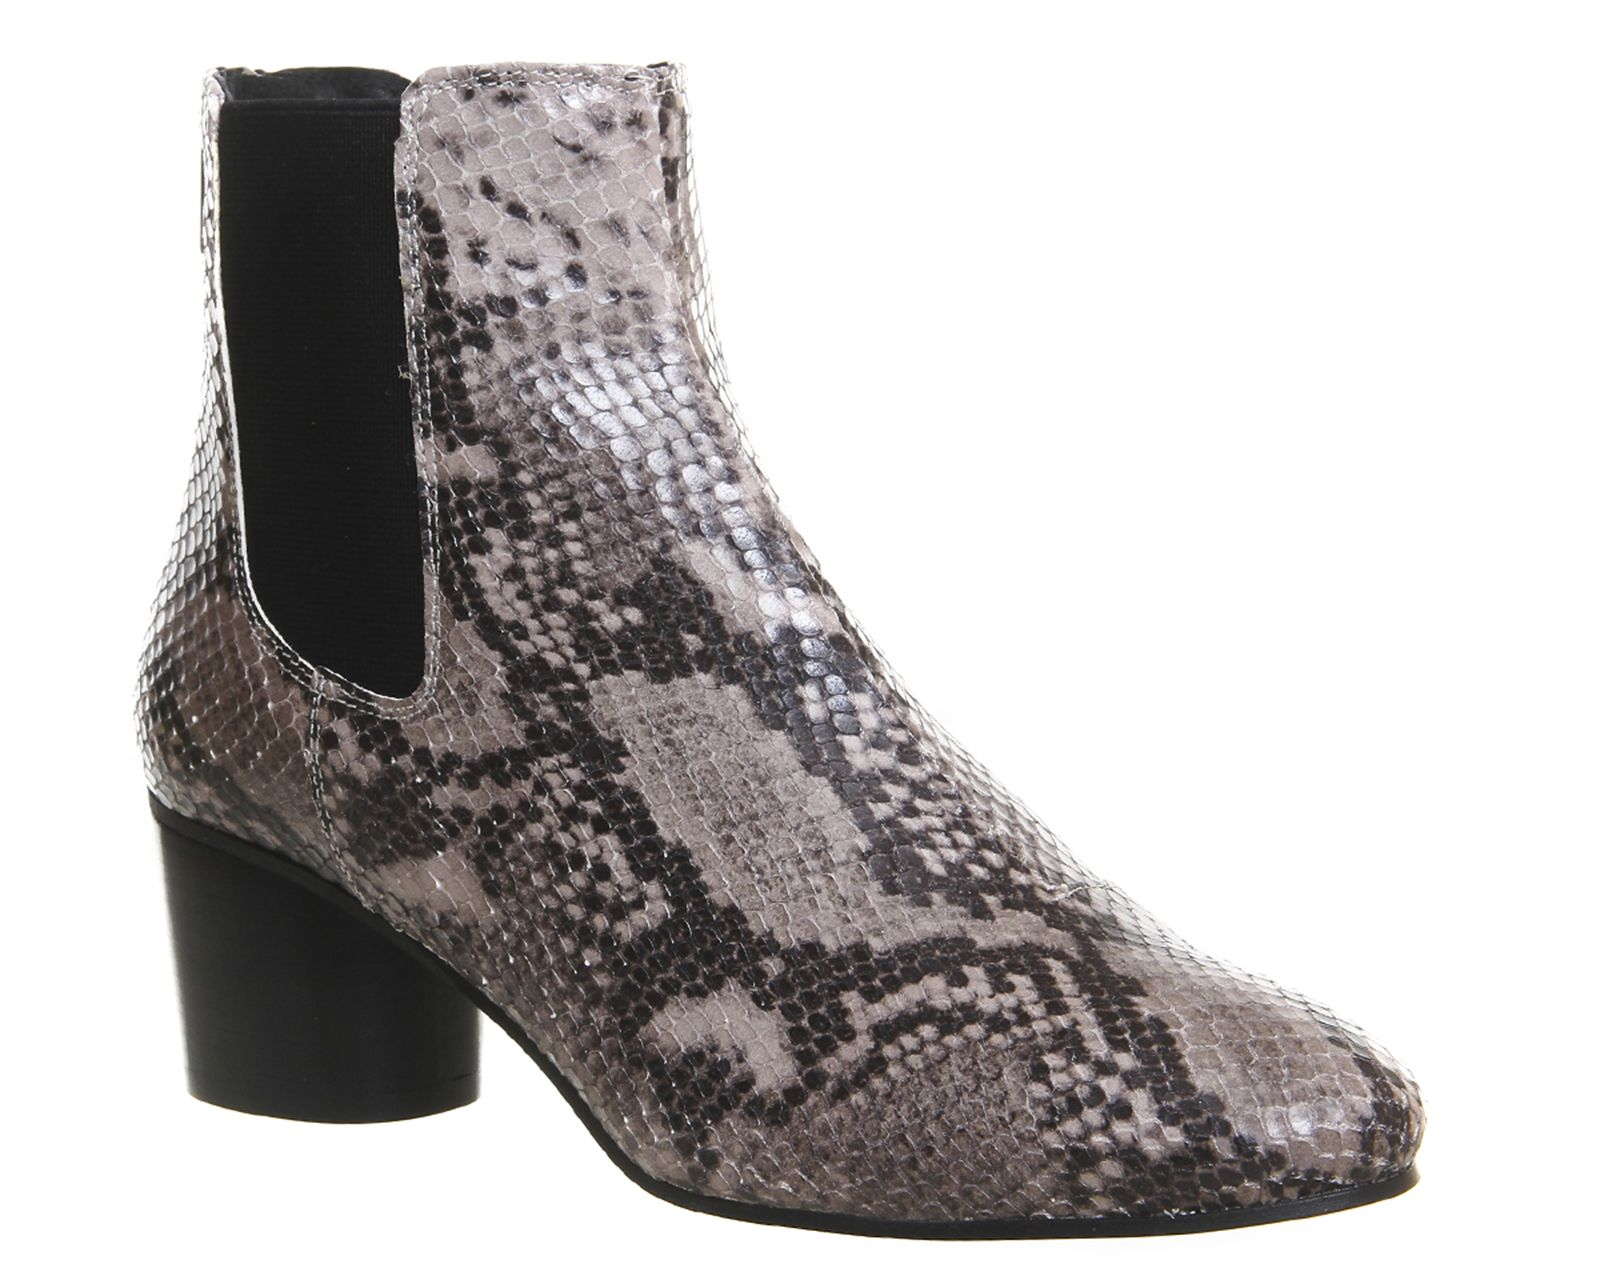 Office Ingot Back Zip Chelsea Boots Grey Snake Embossed Leather - Ankle  Boots